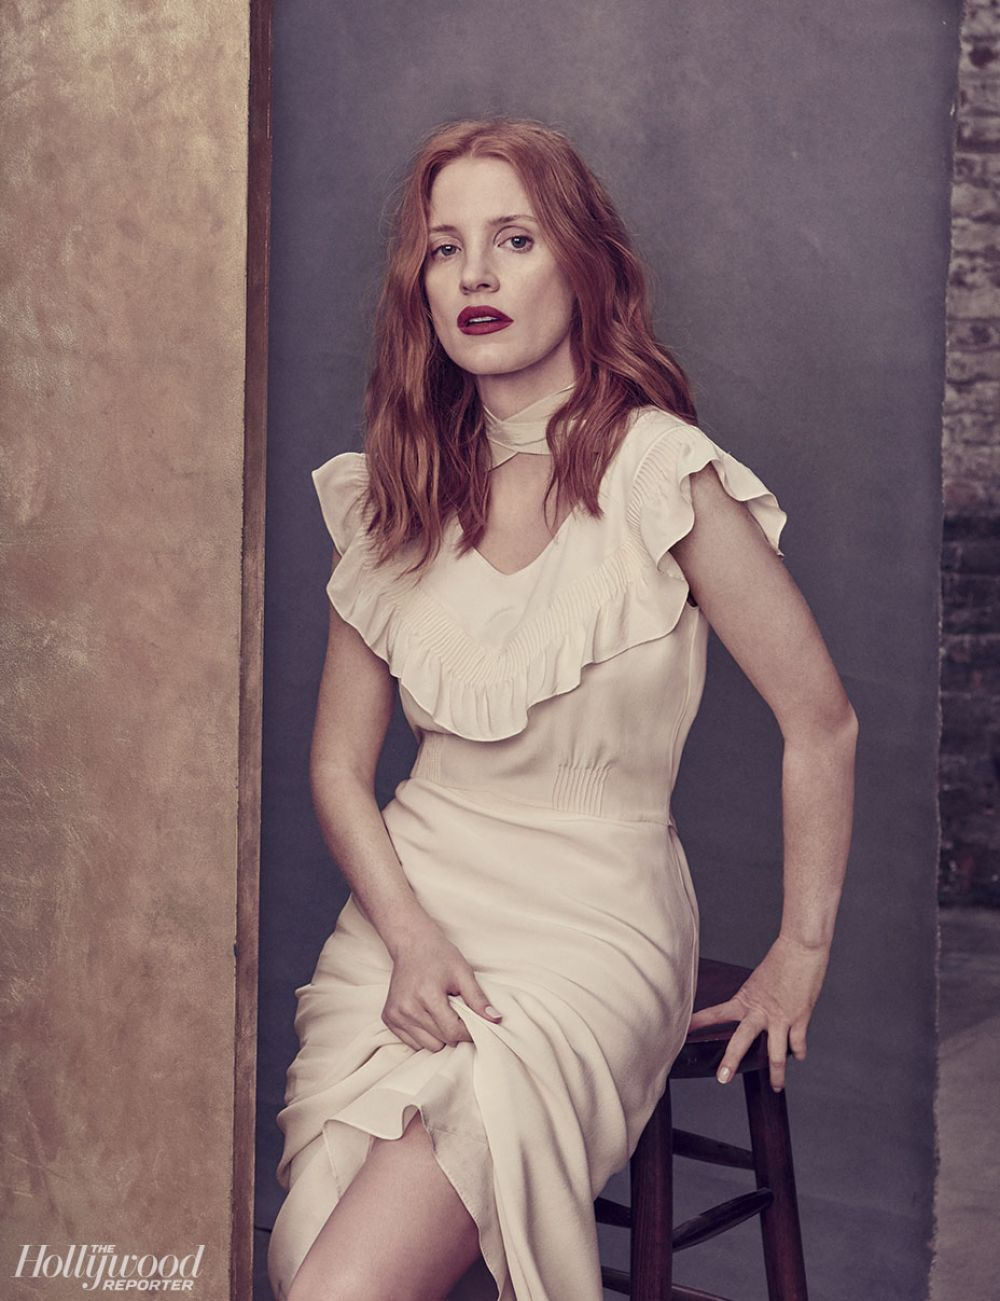 JESSICA CHASTAIN in The Hollywood Reporter, May 2017